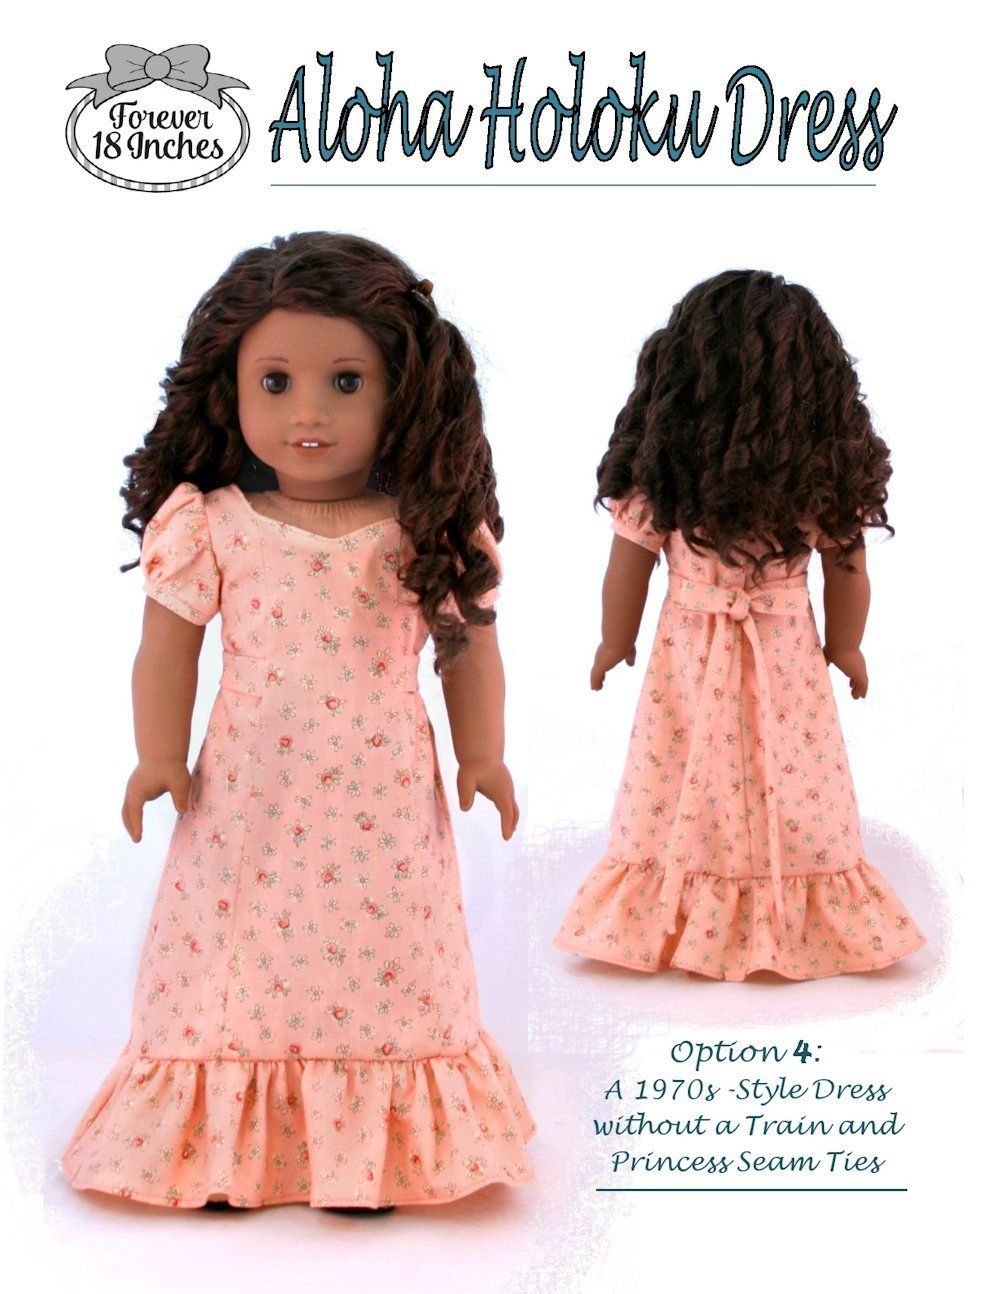 graphic about Free Printable Doll Clothes Patterns for 18 Inch Dolls called 23+ Unbelievable Picture of American Female Doll Sewing Routines